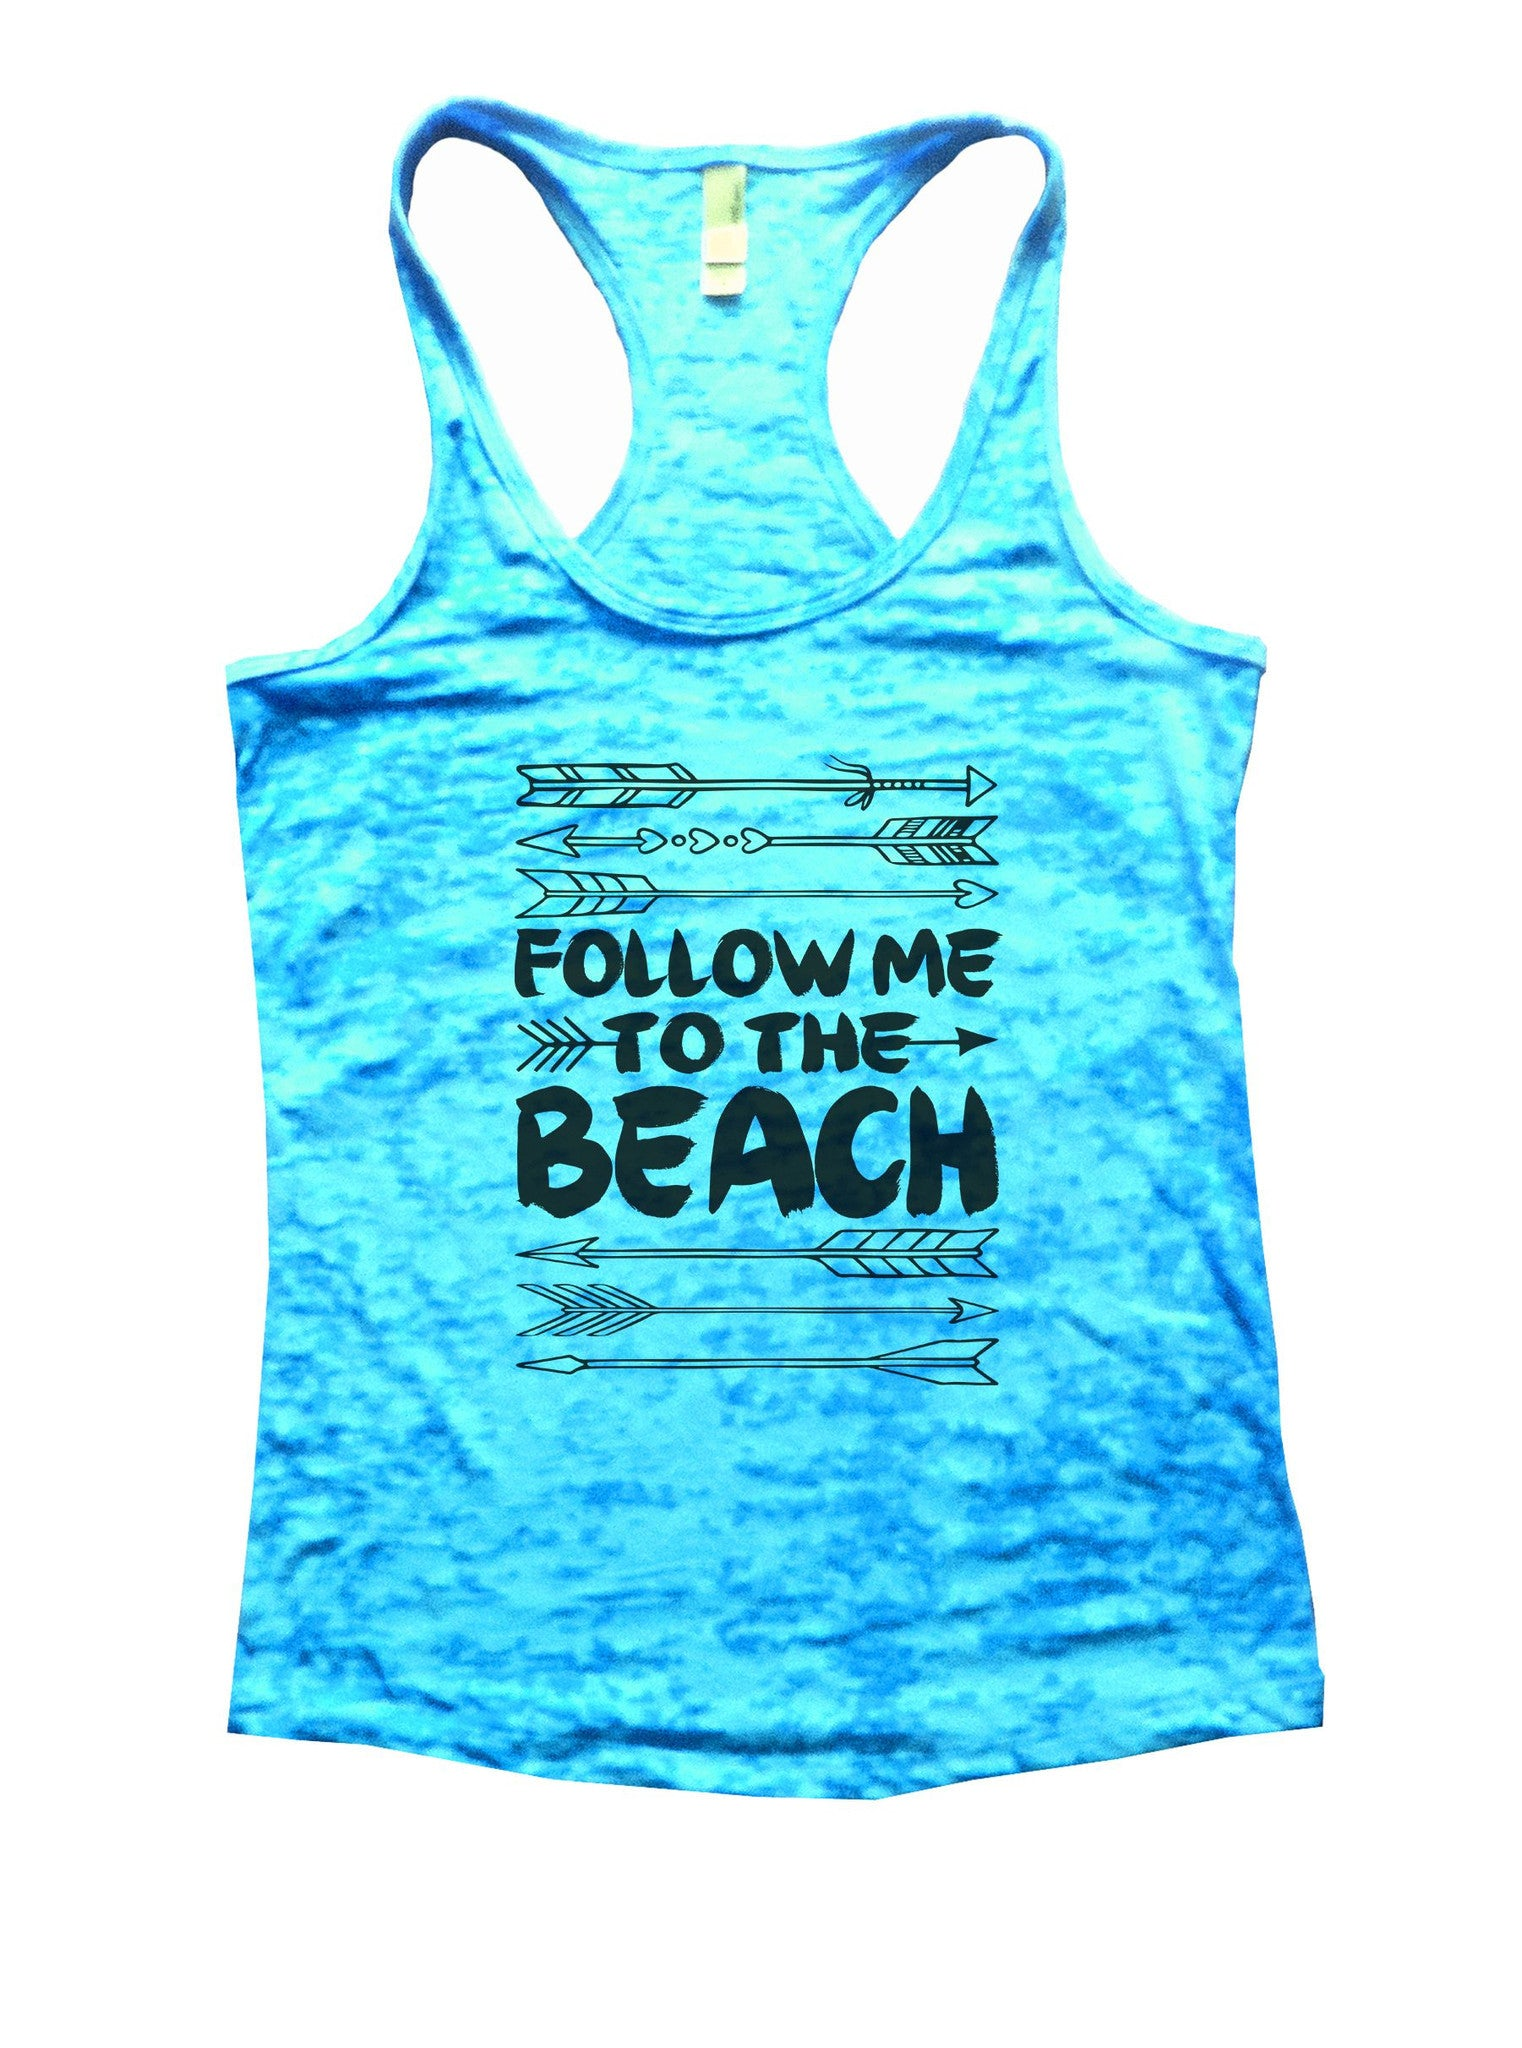 Follow Me To The Beach Burnout Tank Top By BurnoutTankTops.com - 931 - Funny Shirts Tank Tops Burnouts and Triblends  - 4